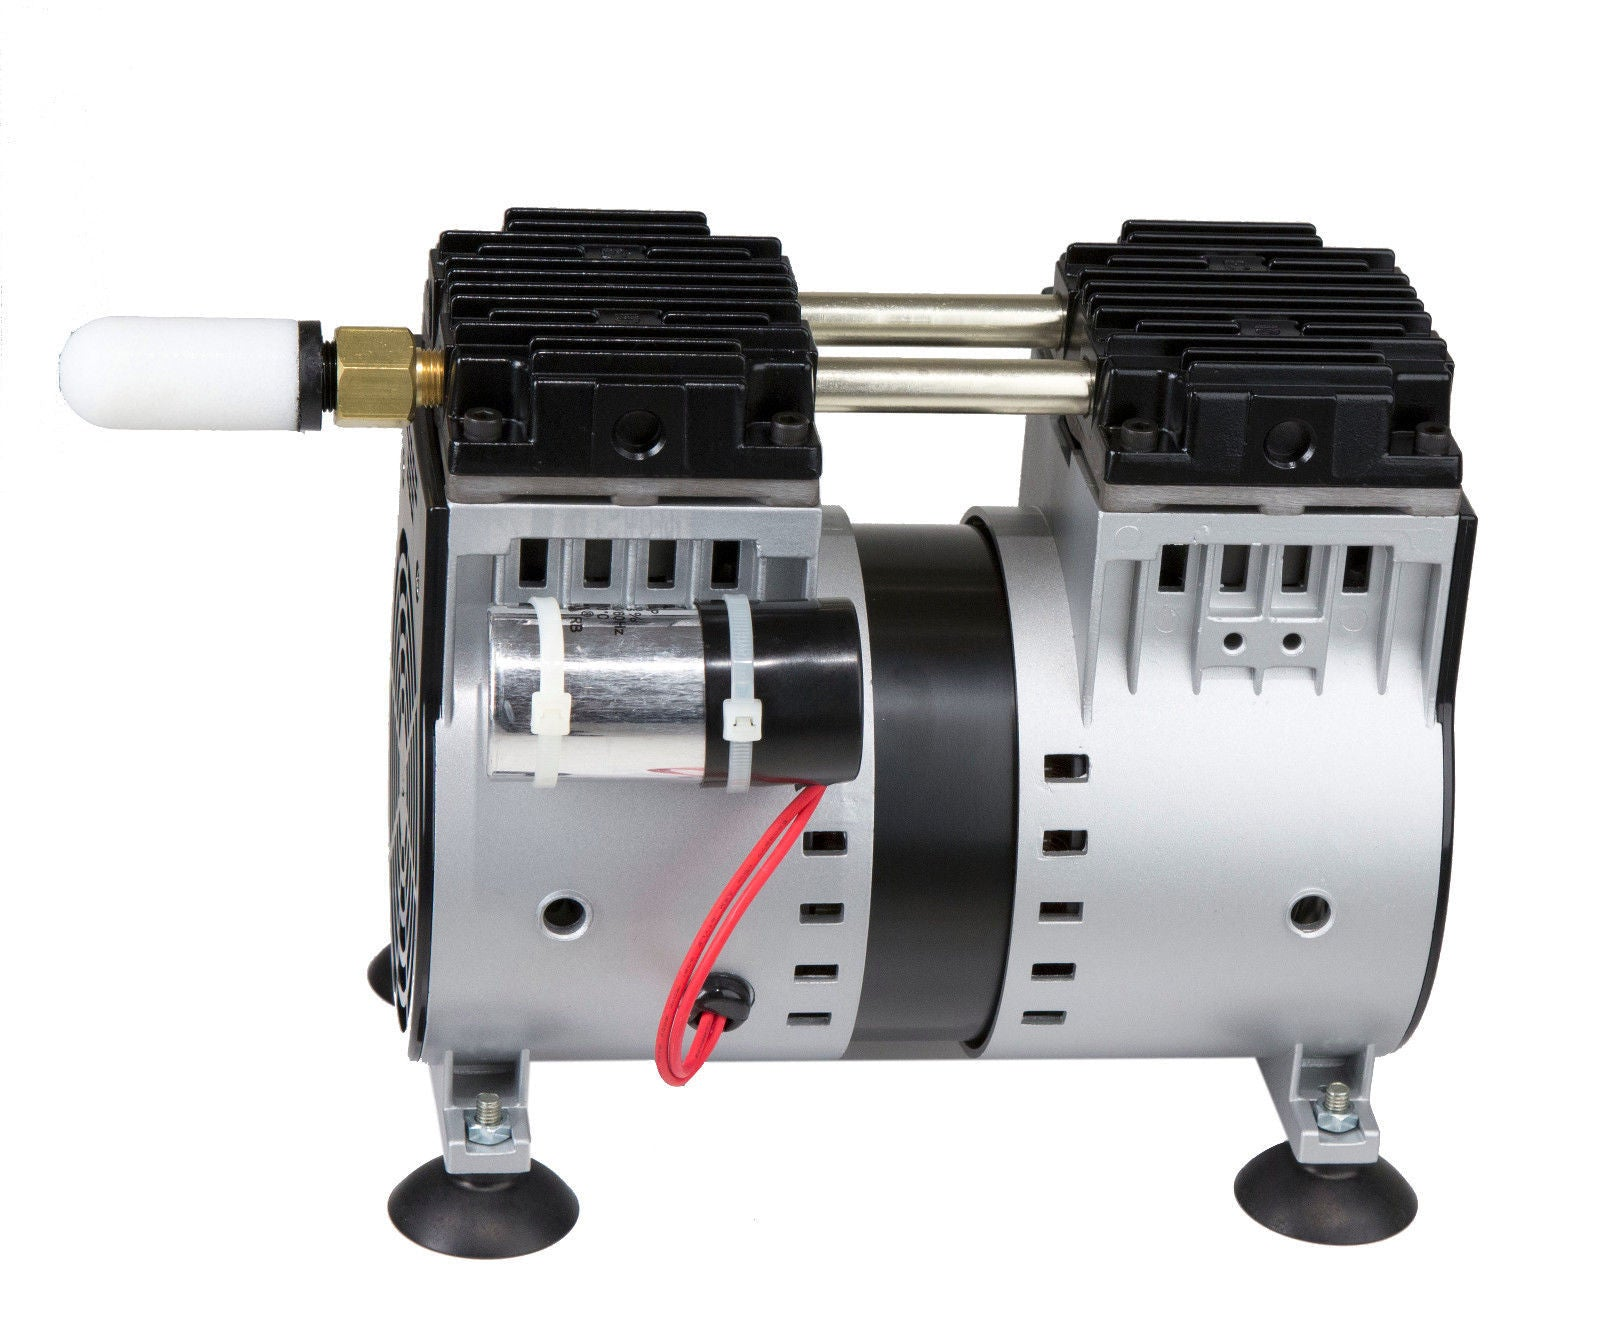 Easypro Erp50 1 2 Hp Rocking Piston Pond Air Compressor Great Compressors Wiring Schematic For Aerator